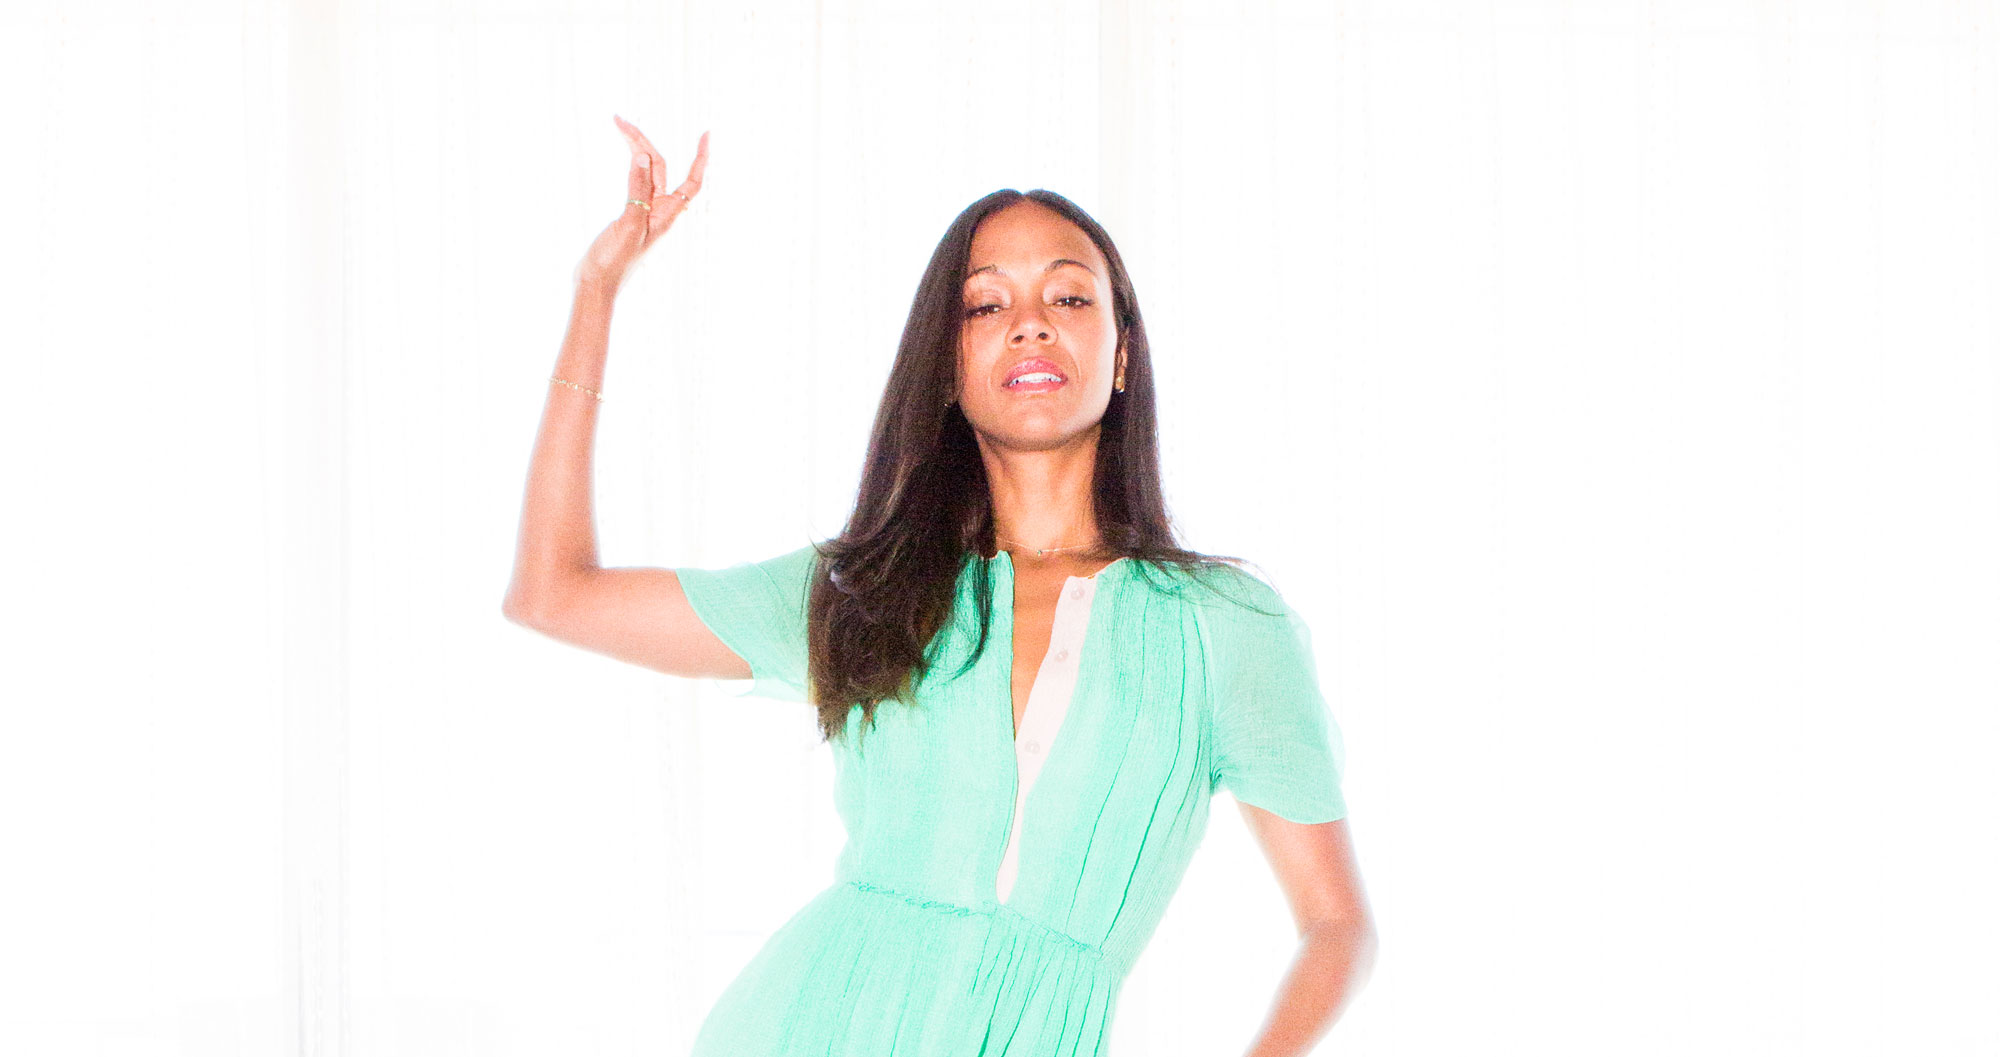 Zoe Saldana on Prepping For Her Star Trek Role